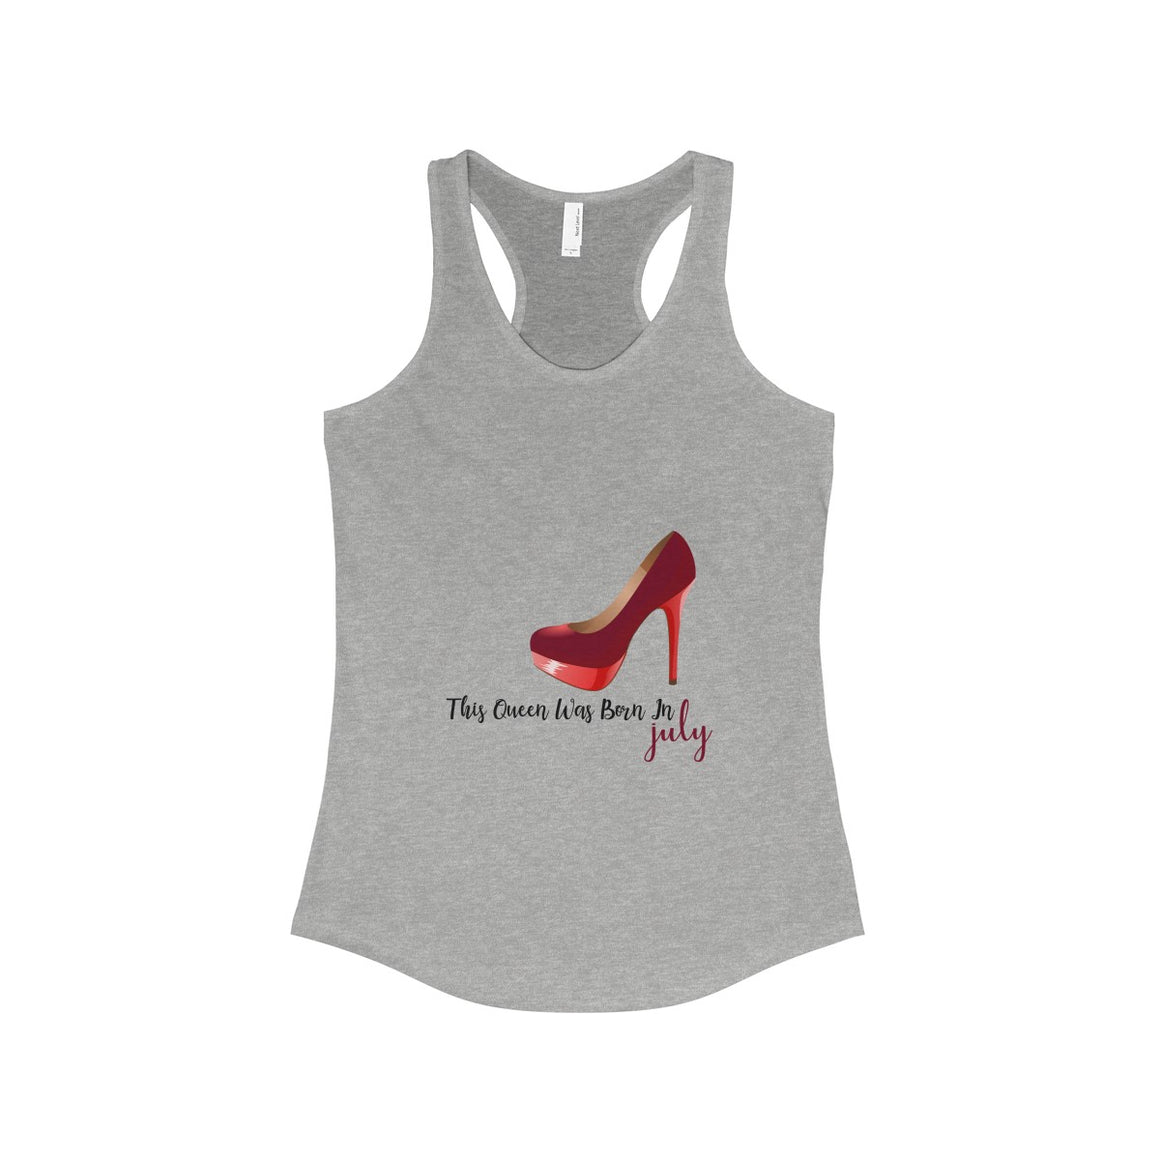 This Queen Was Born in July Women's Ideal Racerback Tank - Lose A Pound Daily